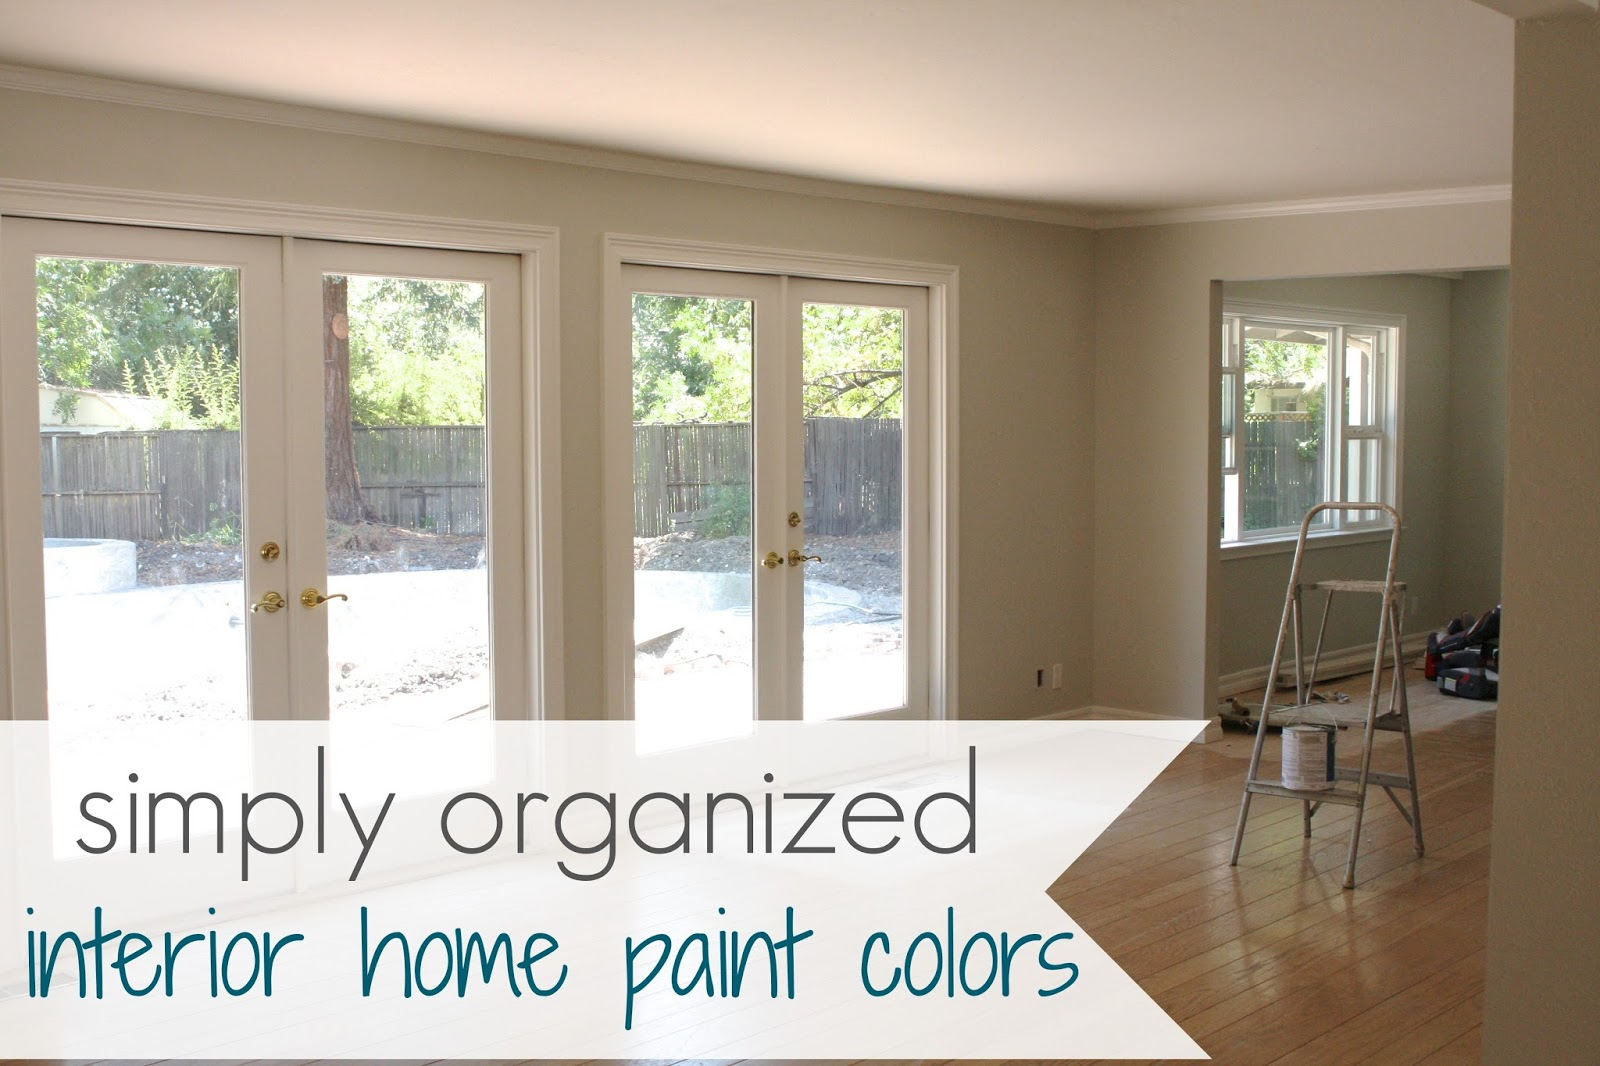 my home interior paint color palate - simply organized